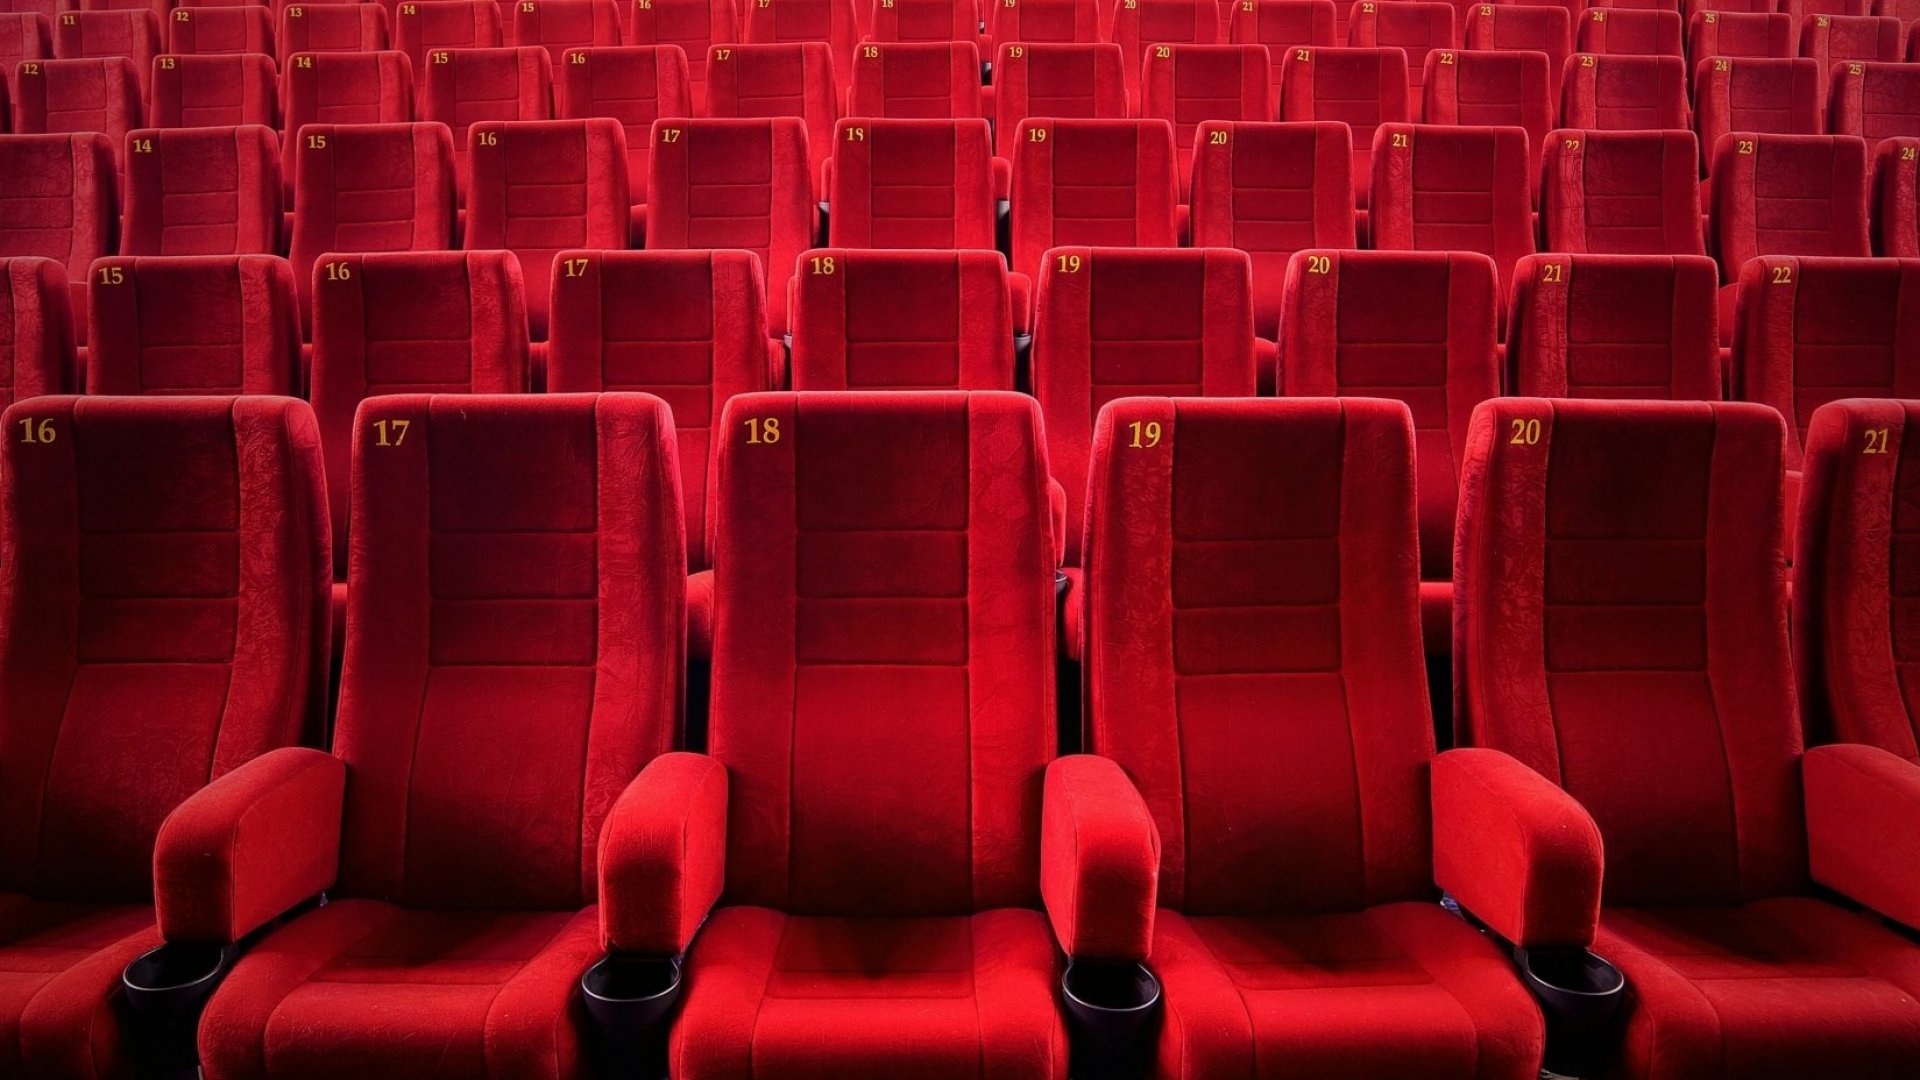 MoviePass Wanted to Disrupt Movie Tickets, but Then It Did the 1 Thing a Business Should Never Do